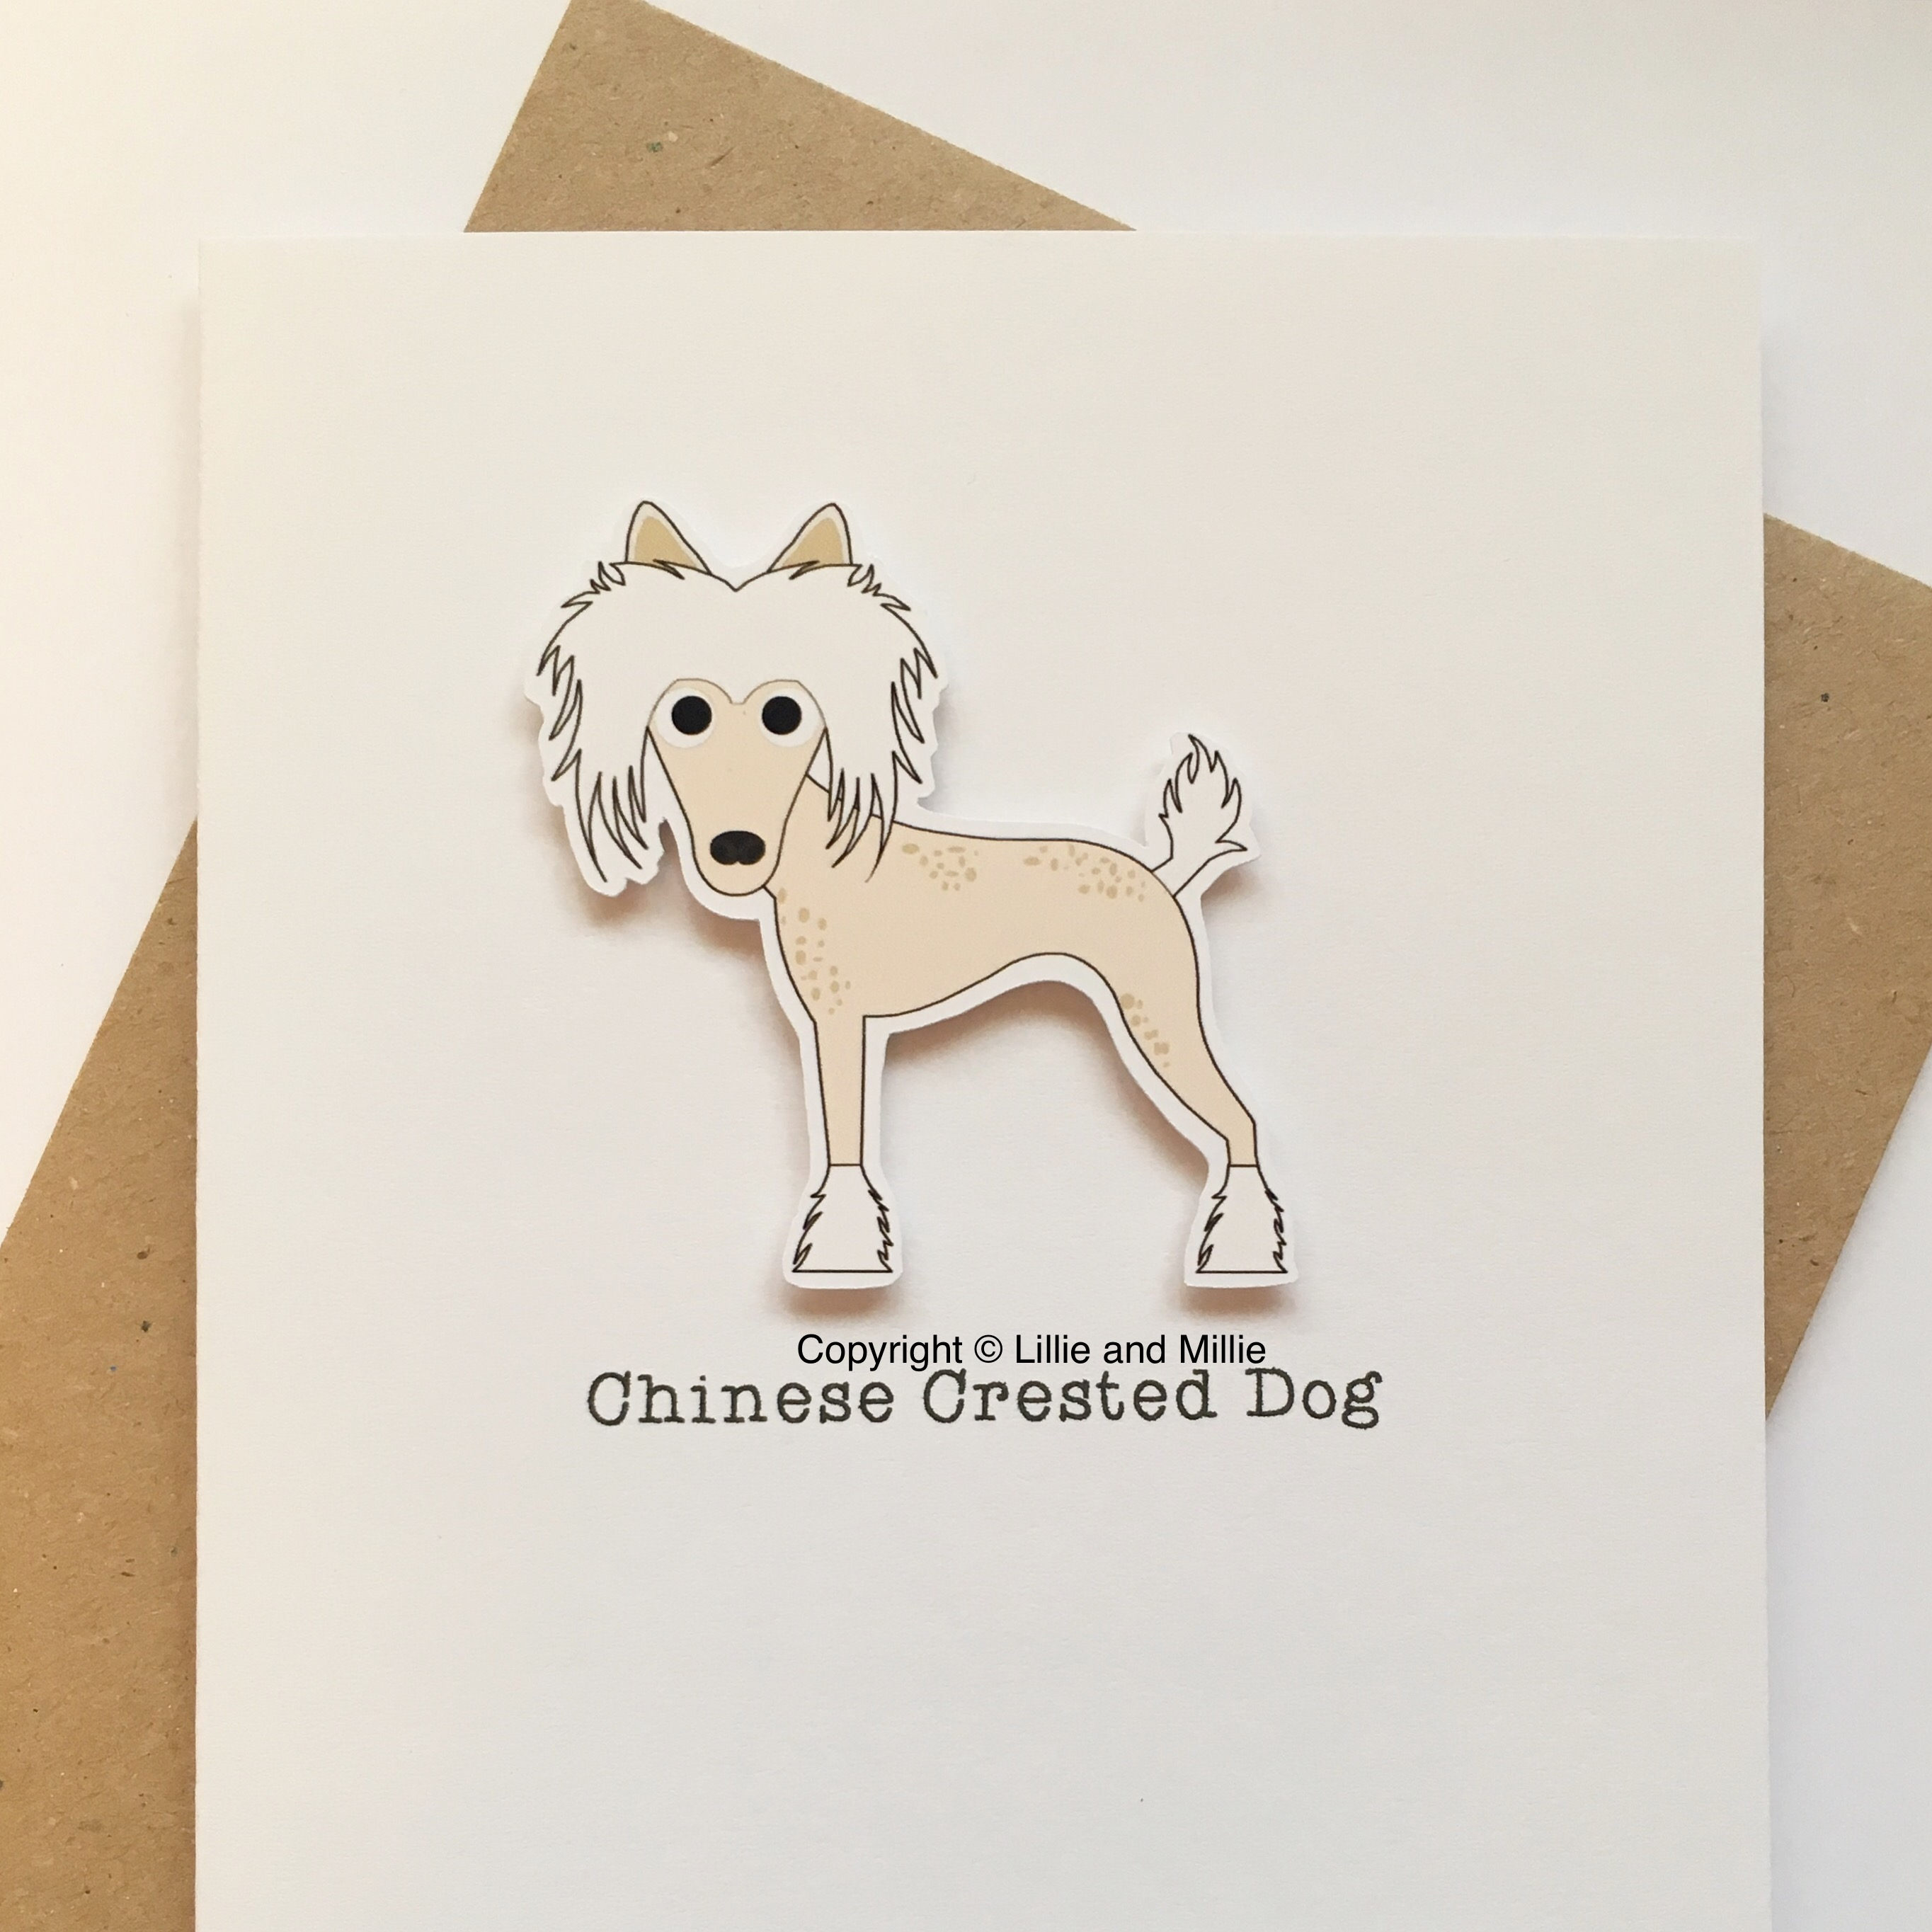 Cute and Cuddly Chinese Crested Dog Card